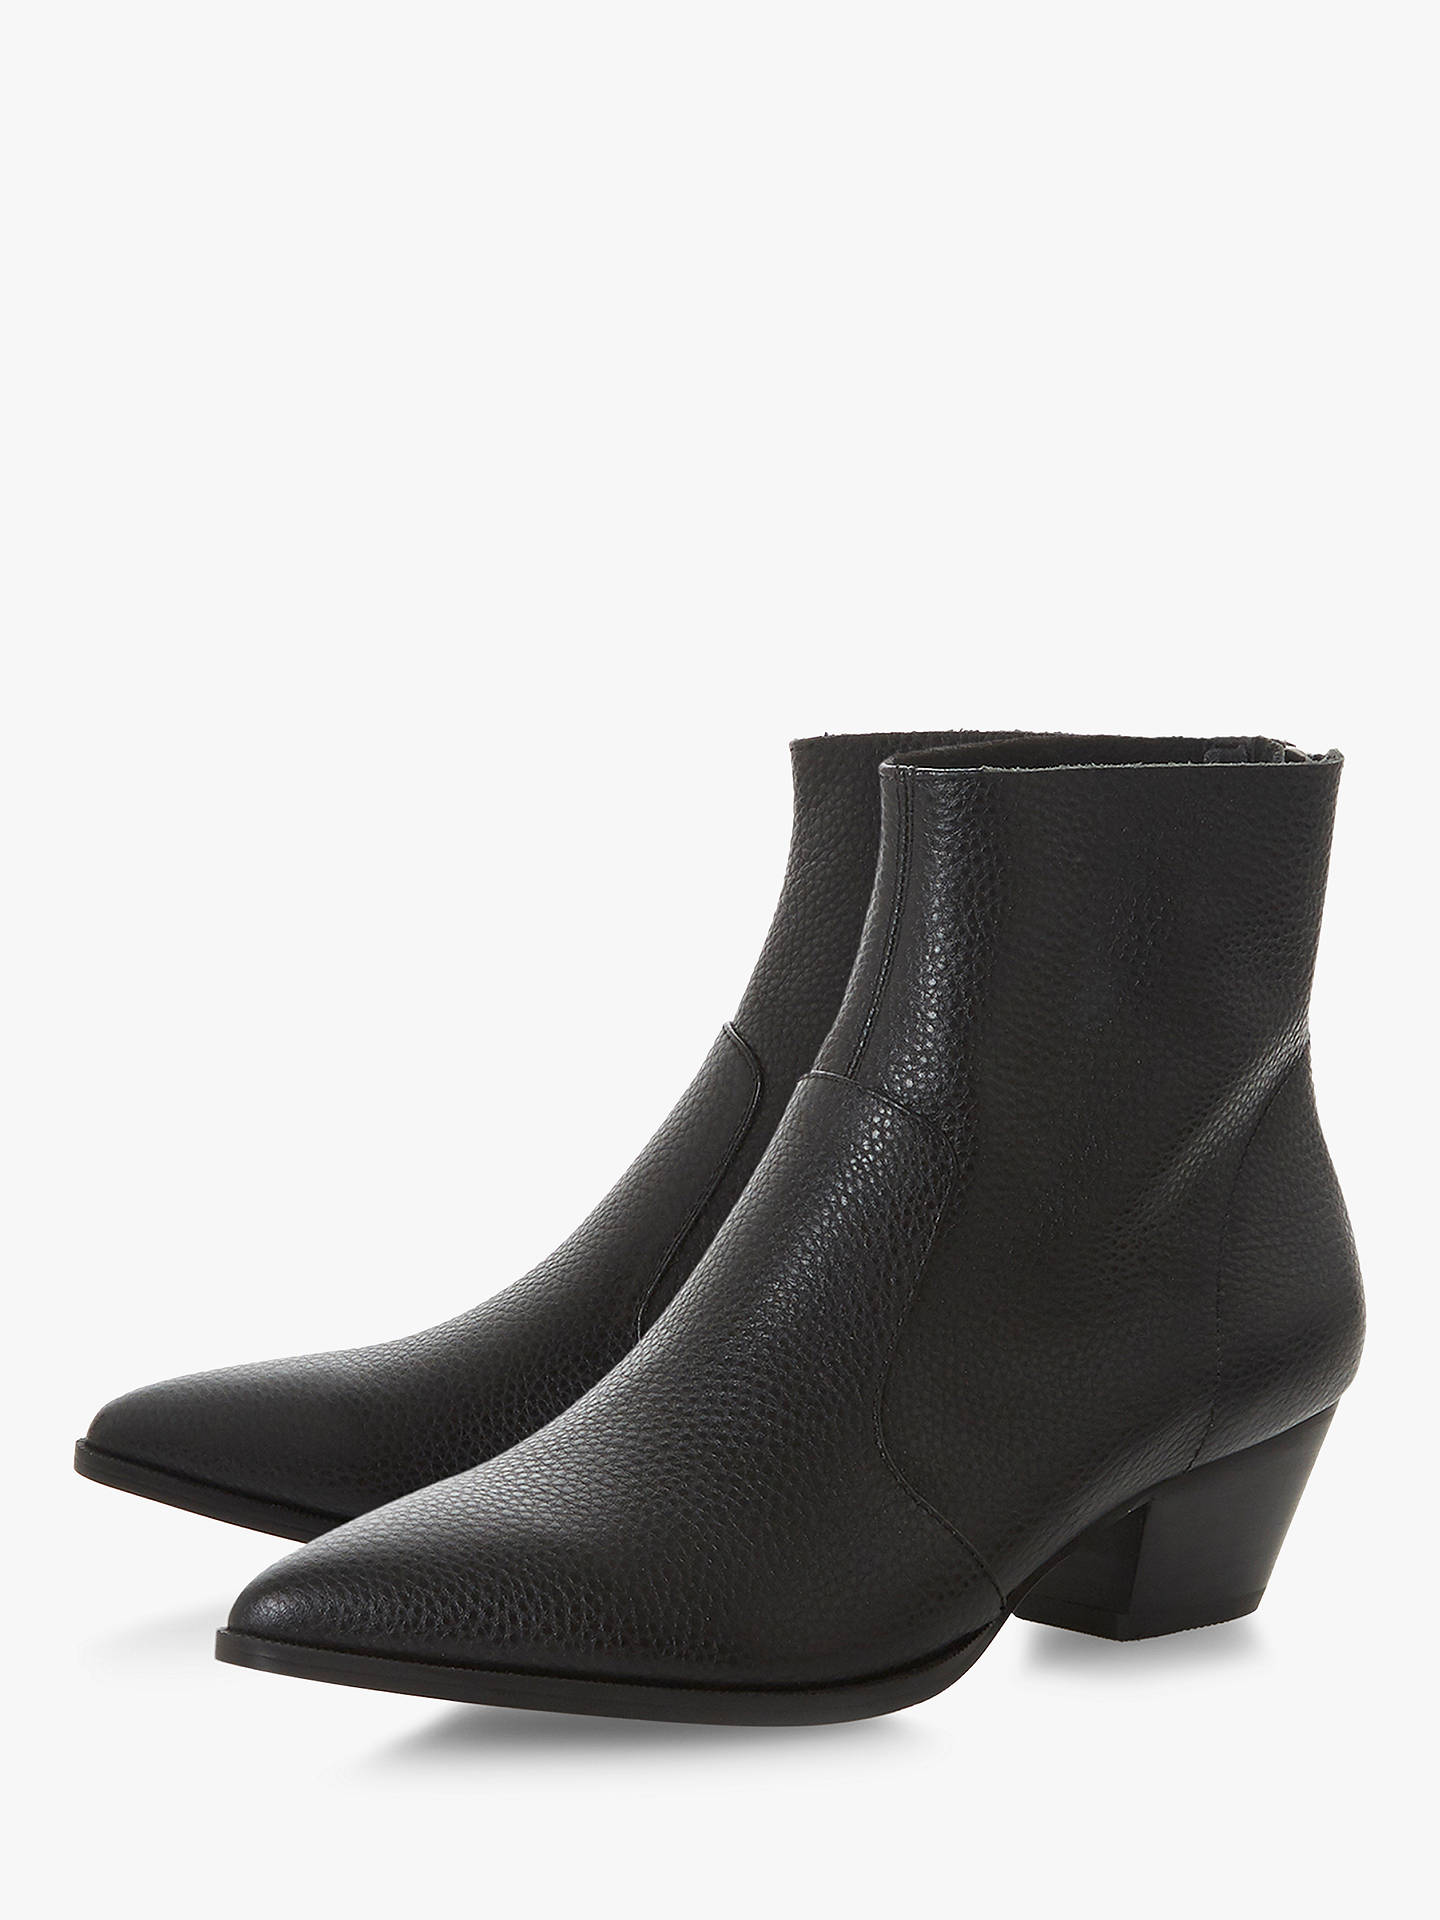 Buy Steve Madden Cafe SM Ankle Boots, Black Leather, 3 Online at johnlewis.com